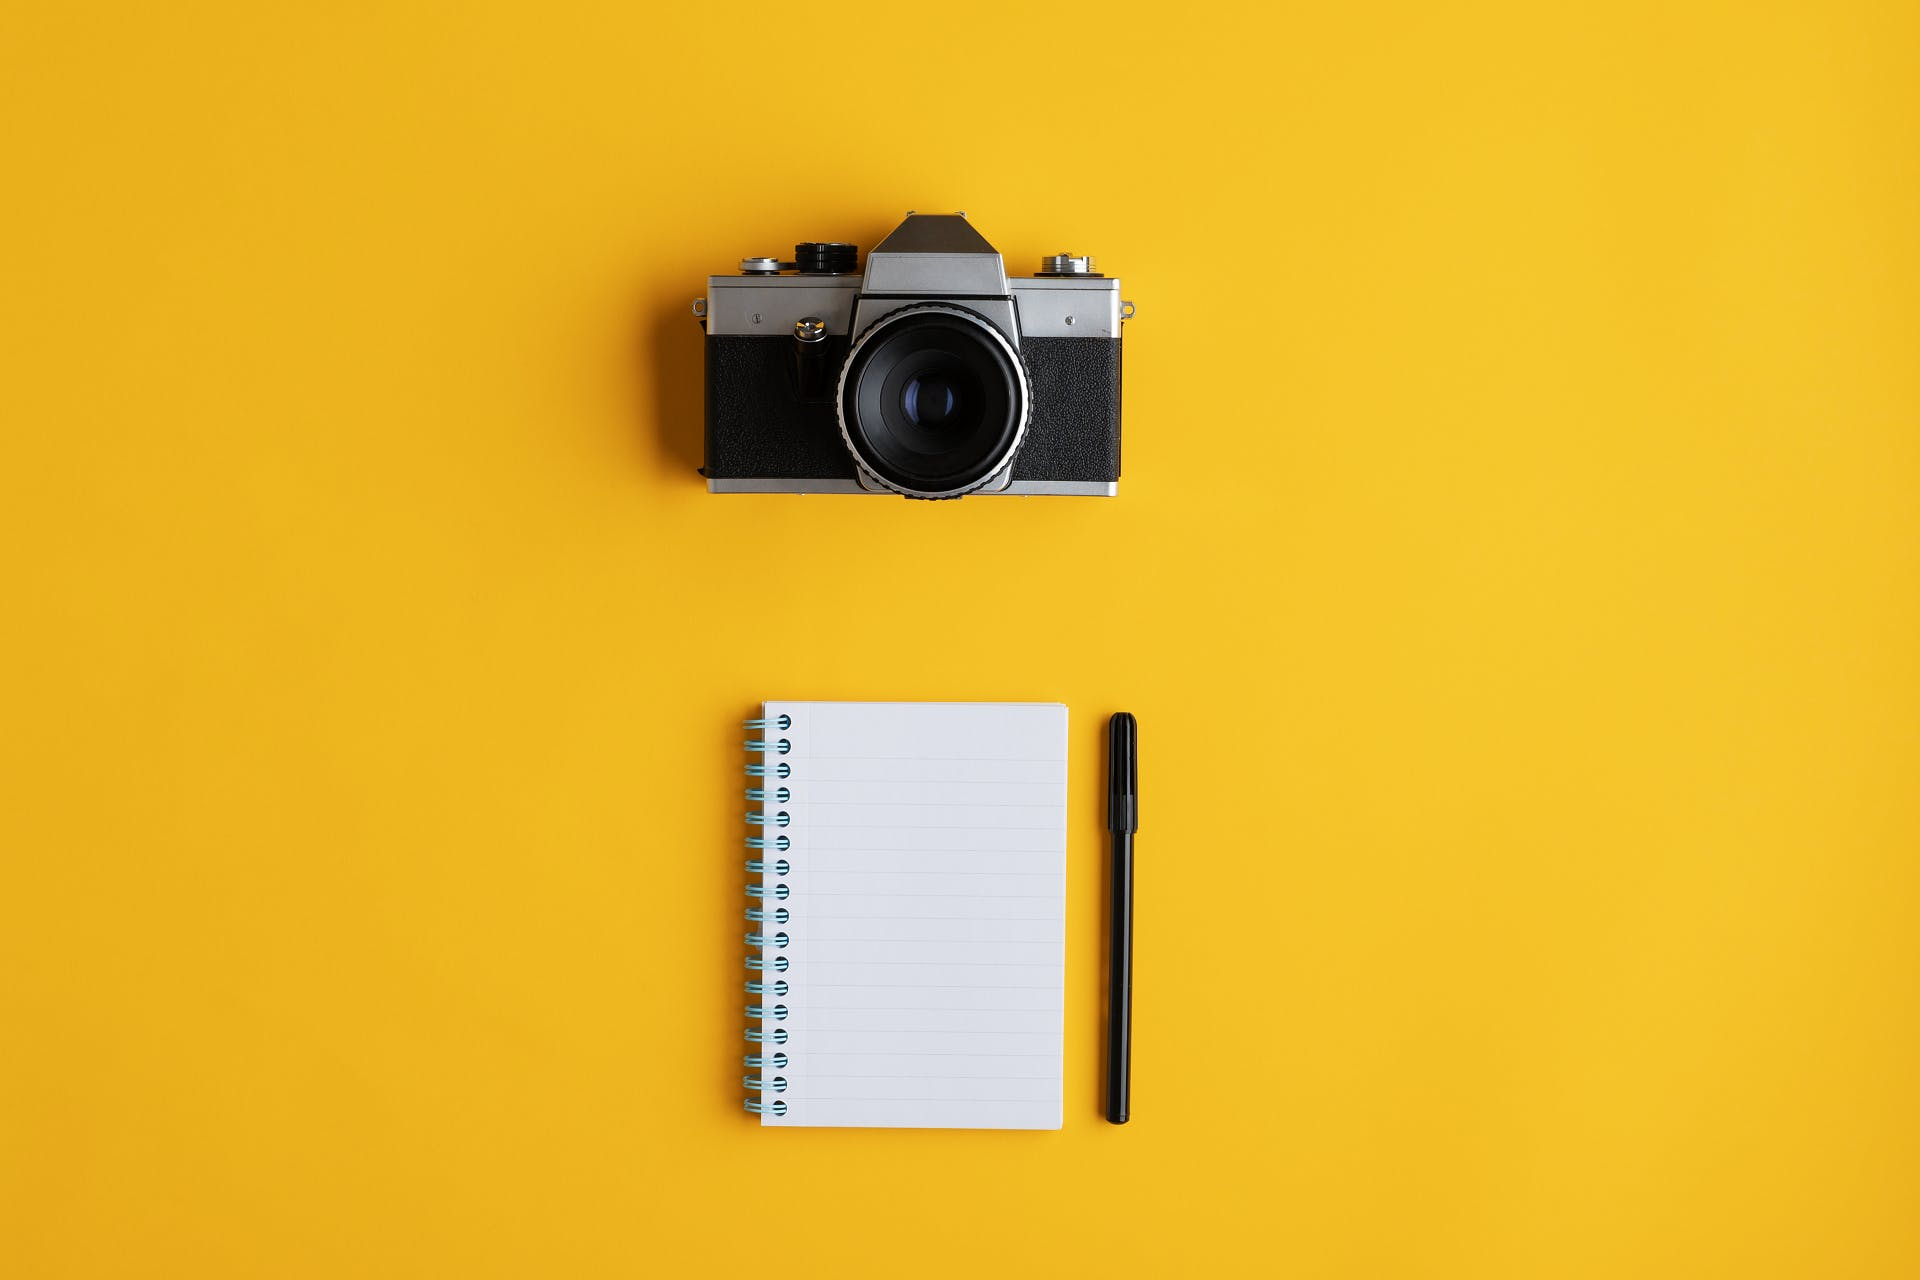 An image of a camera and a notepad on yellow background.